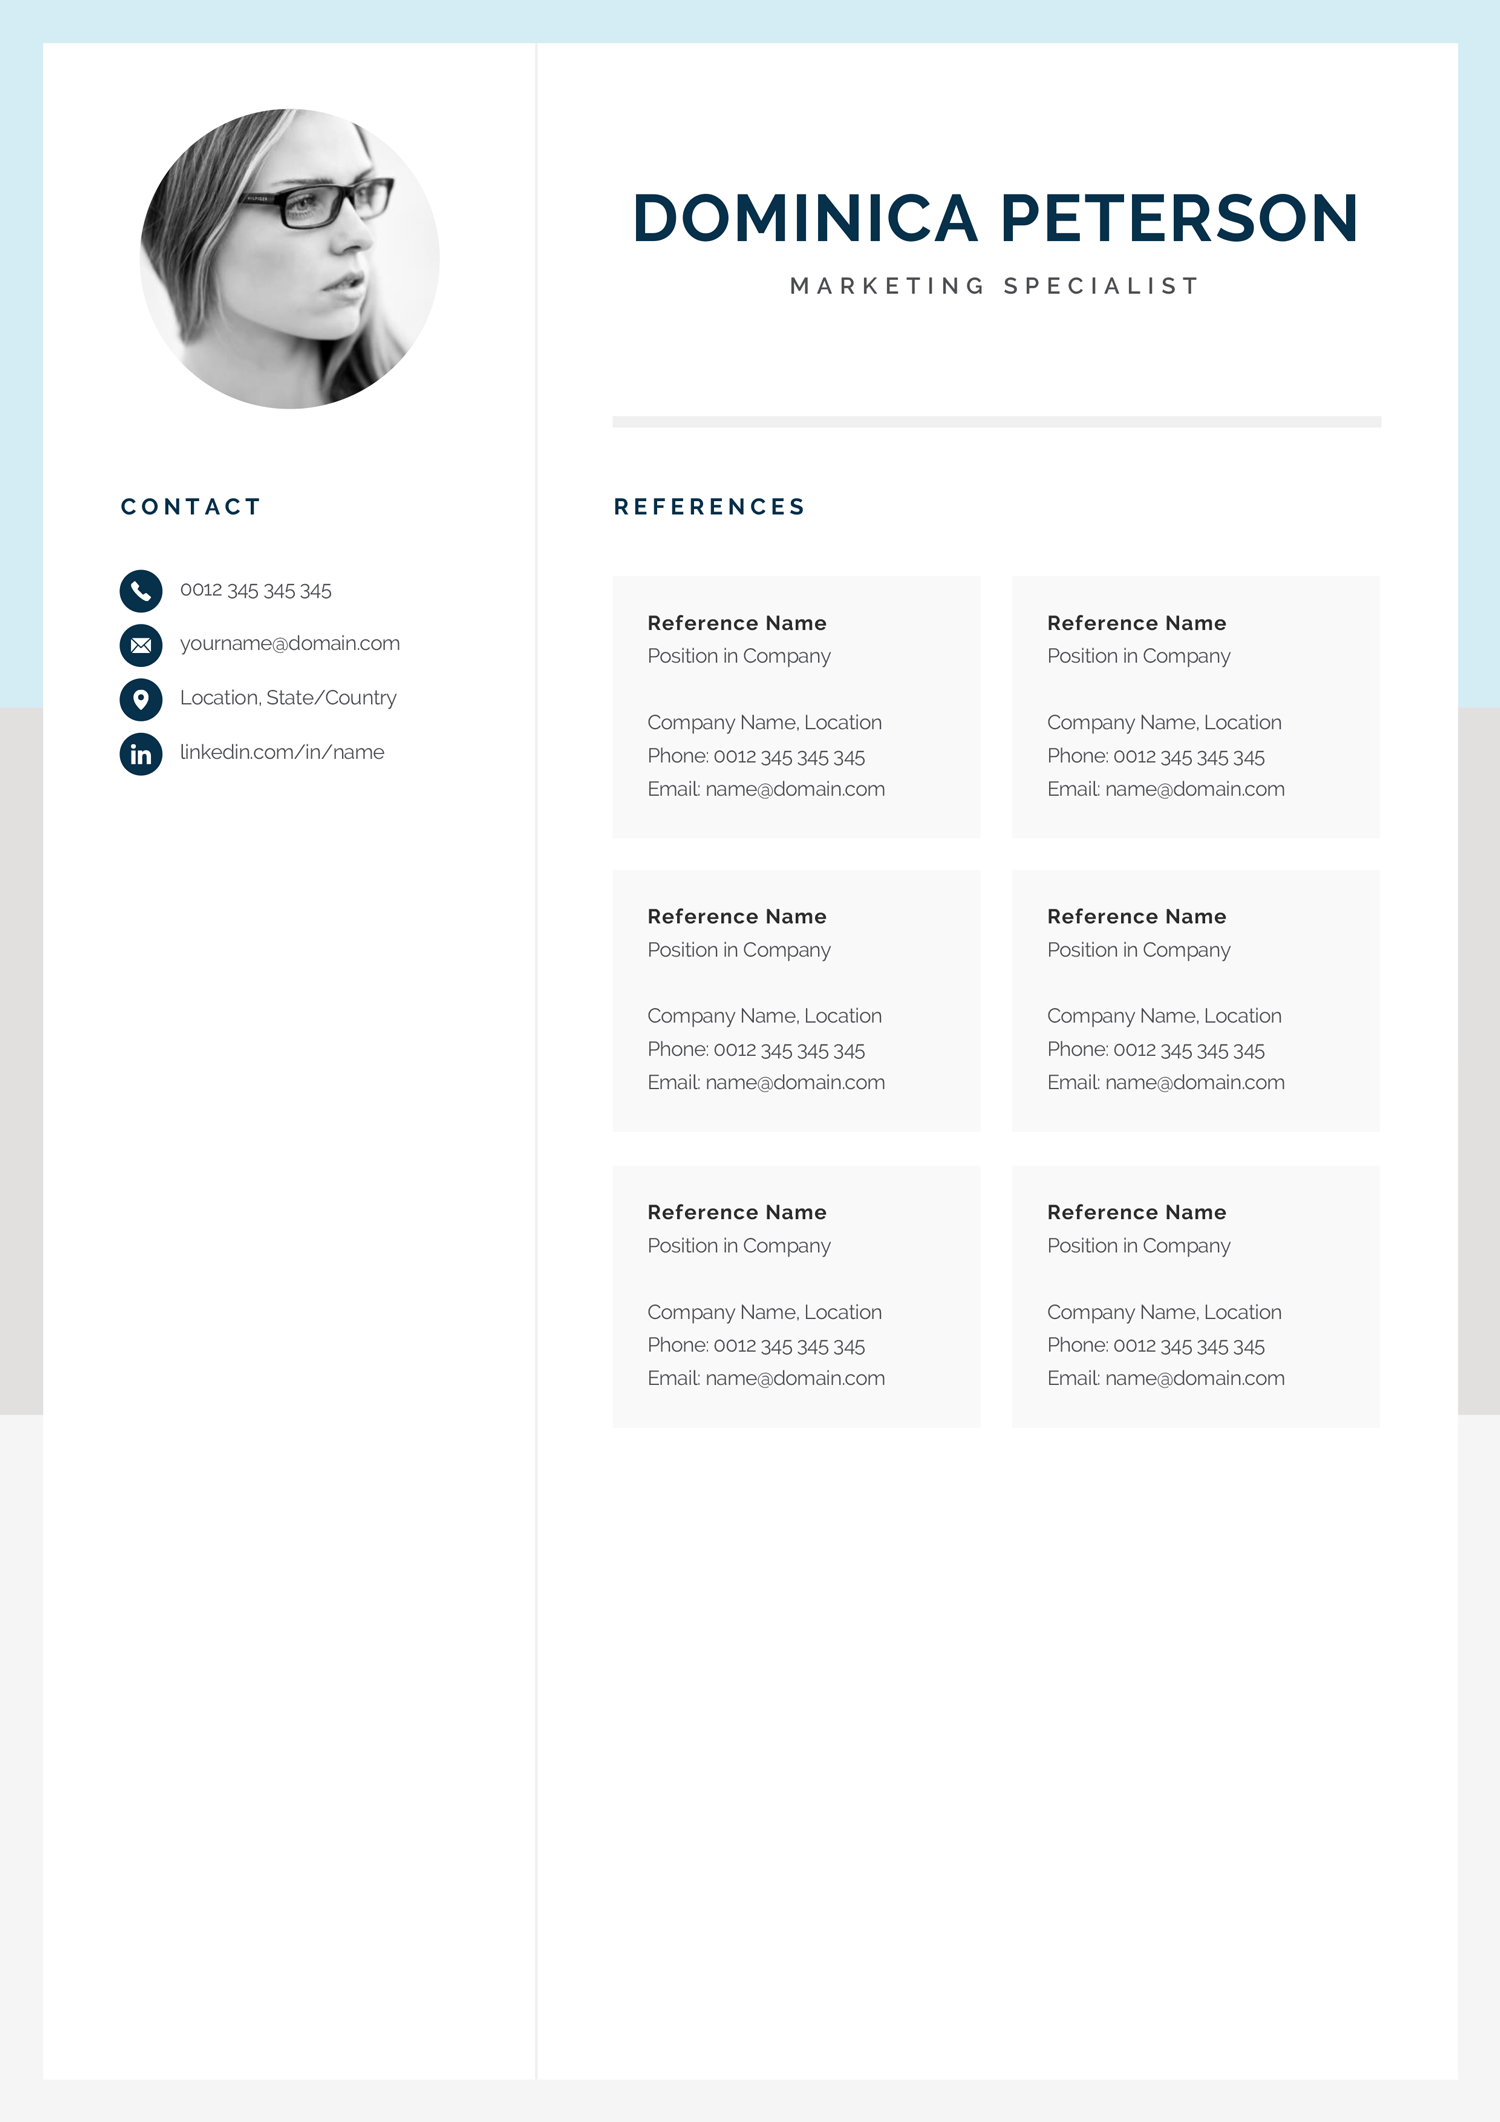 Modern Resume Template Creative Cv With Photo 1 2 Page Marketing Cv Photo Resume For Word Mac Or Pc Instant Download Dominica Cv Template Professional Resume Template Modern Resume Template